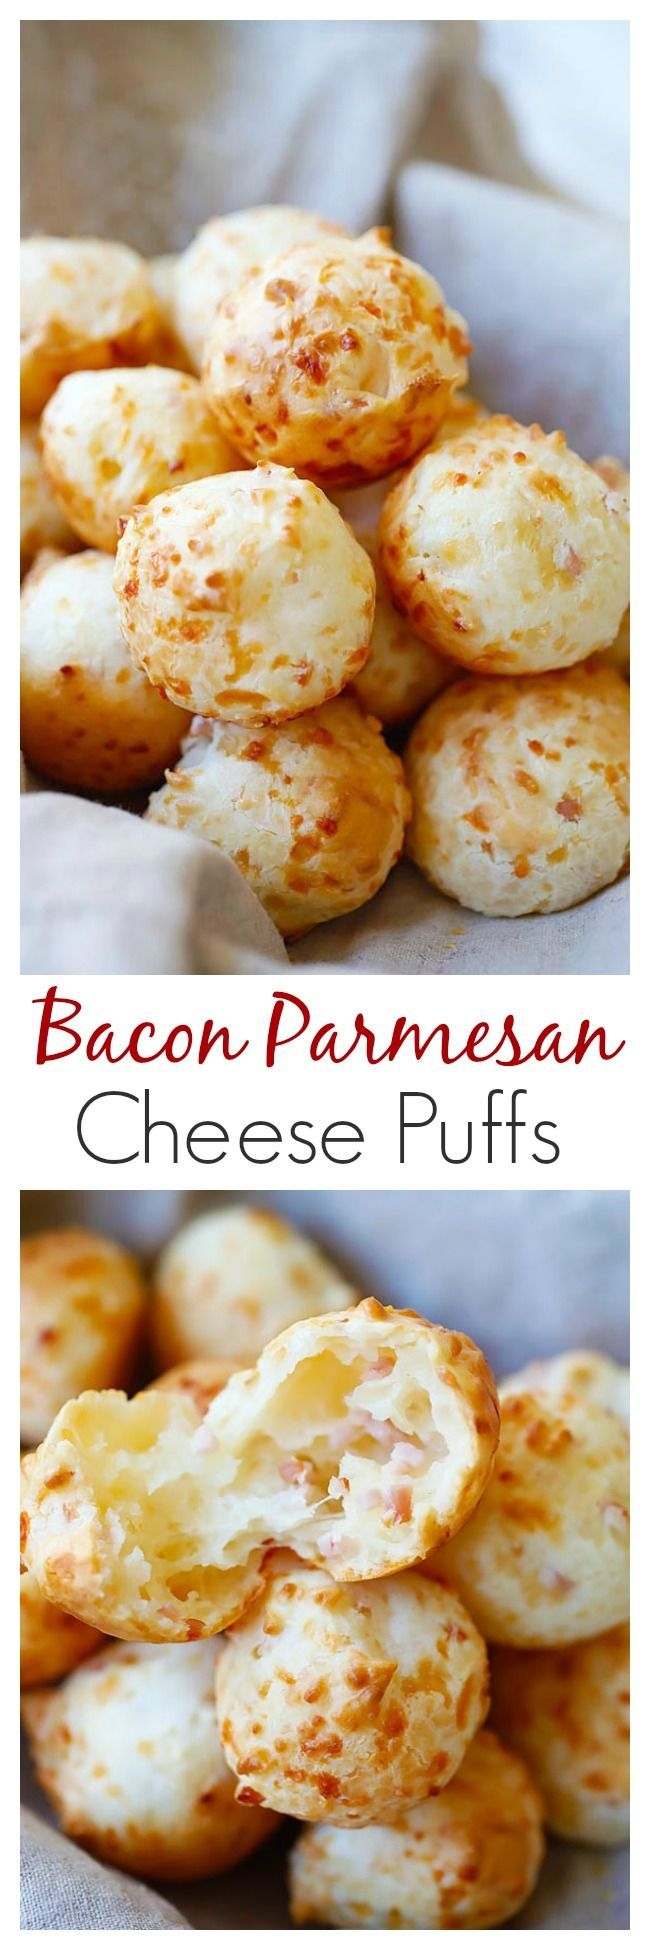 Bacon Parmesan Gougeres - cheesy and savory Gougeres or French cheese puffs recipe. Every bite is loaded with bacon bits and Parmesan cheese, so good!